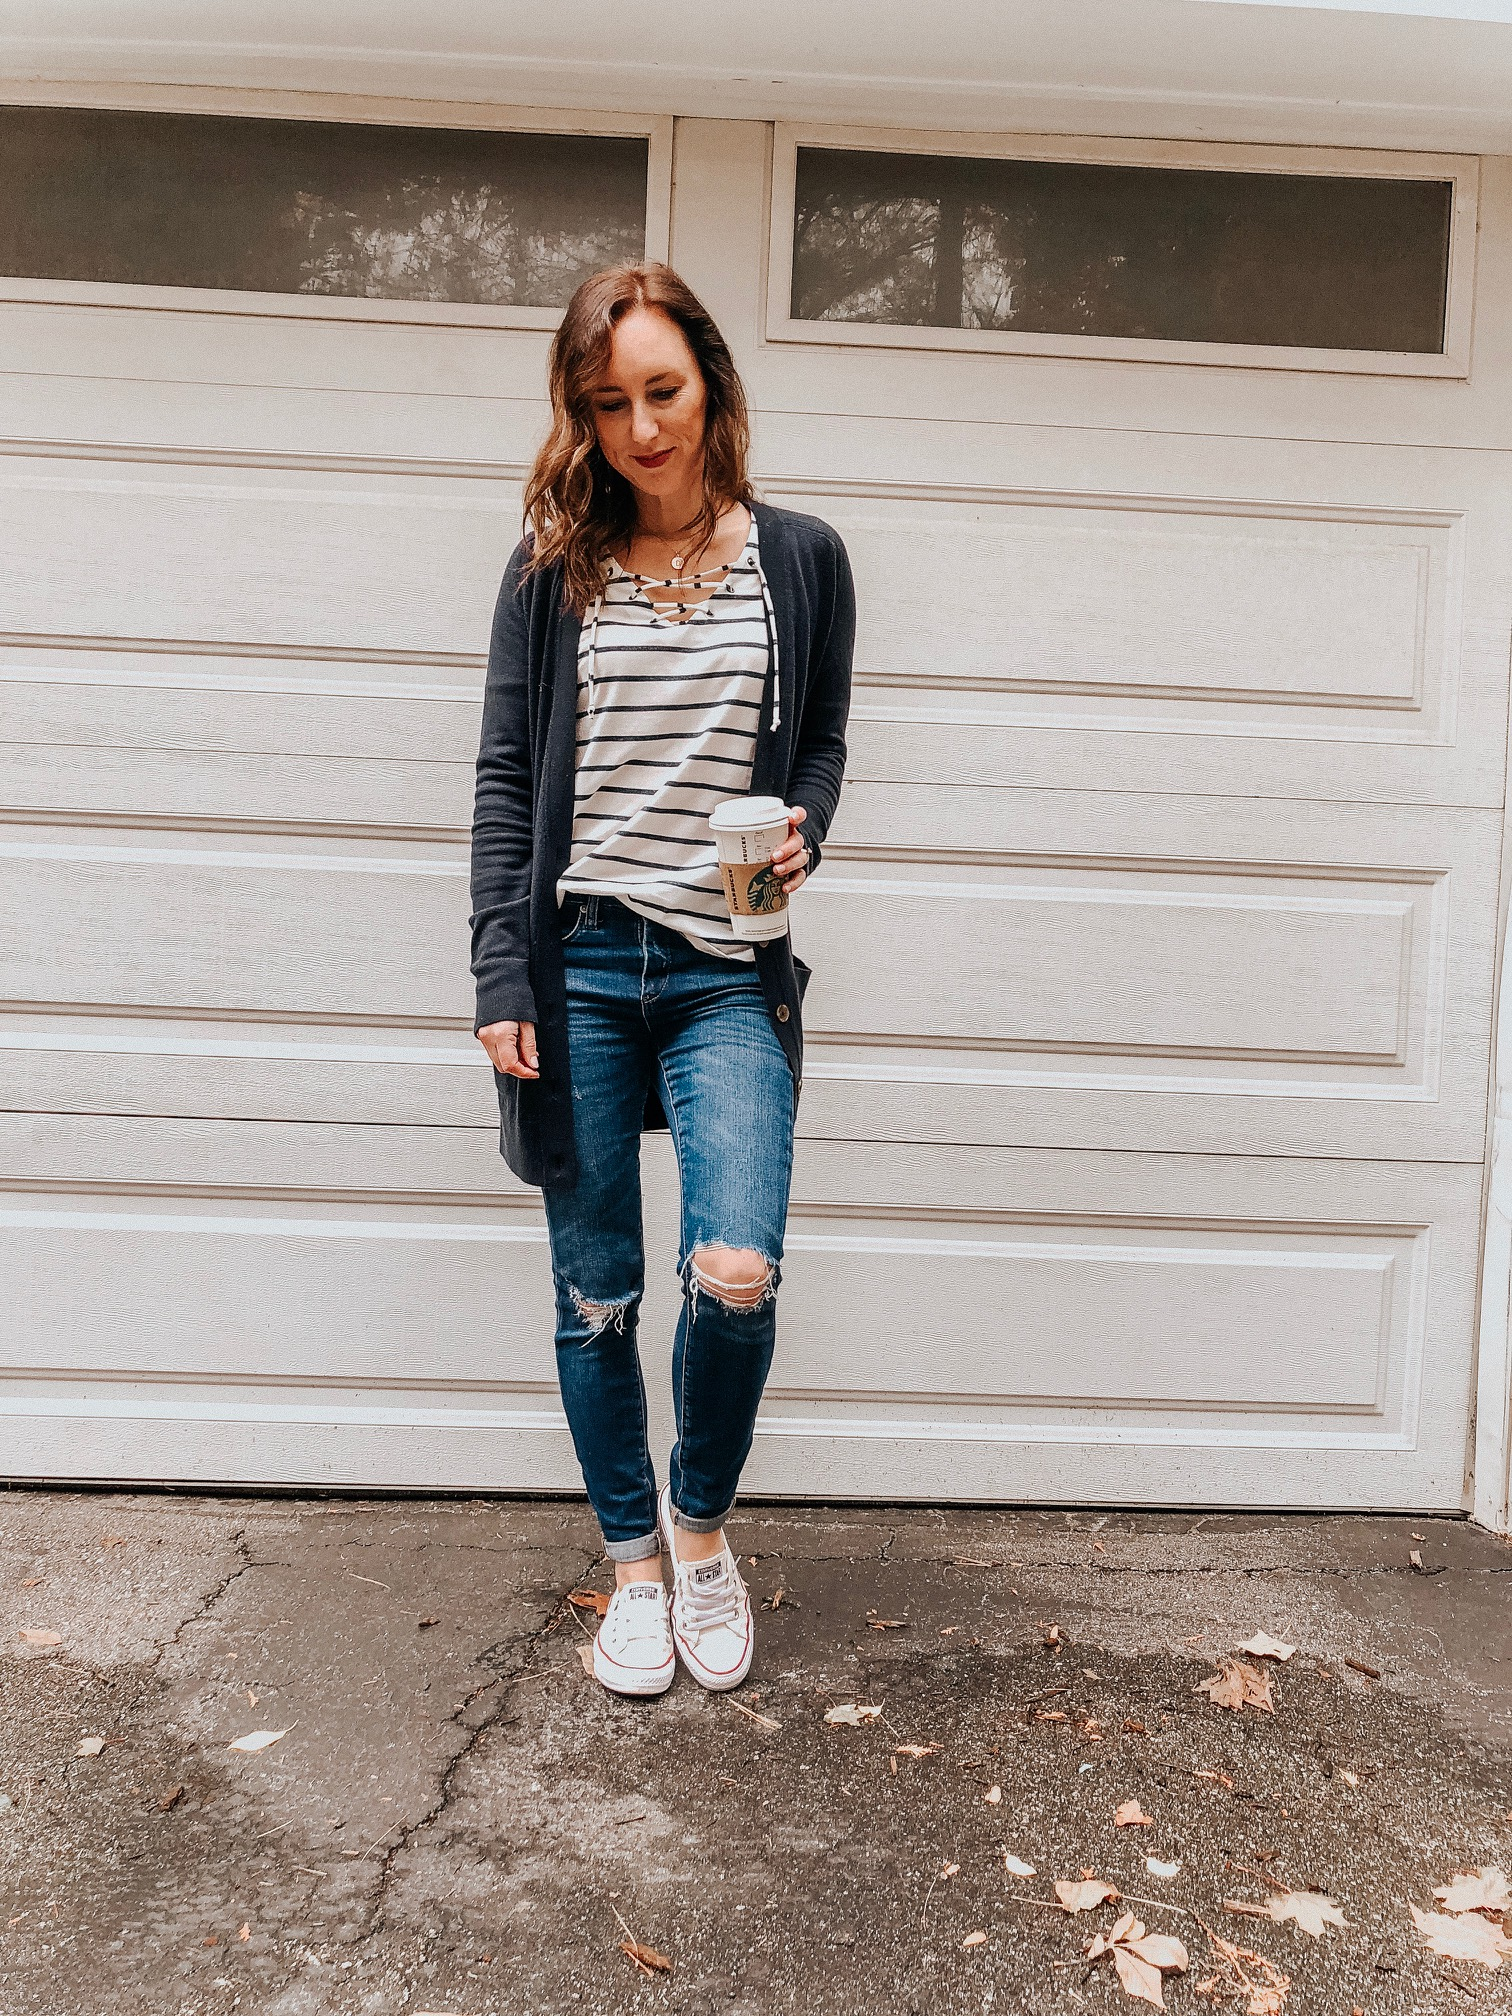 Fall Instagram Favorites | Daily Splendor Life and Style Blog | striped tee, distressed denim, cardigan and sneakers #casualstyle #casualoutfit #momstyle #everydayfashion #fallstyle #fallneutrals